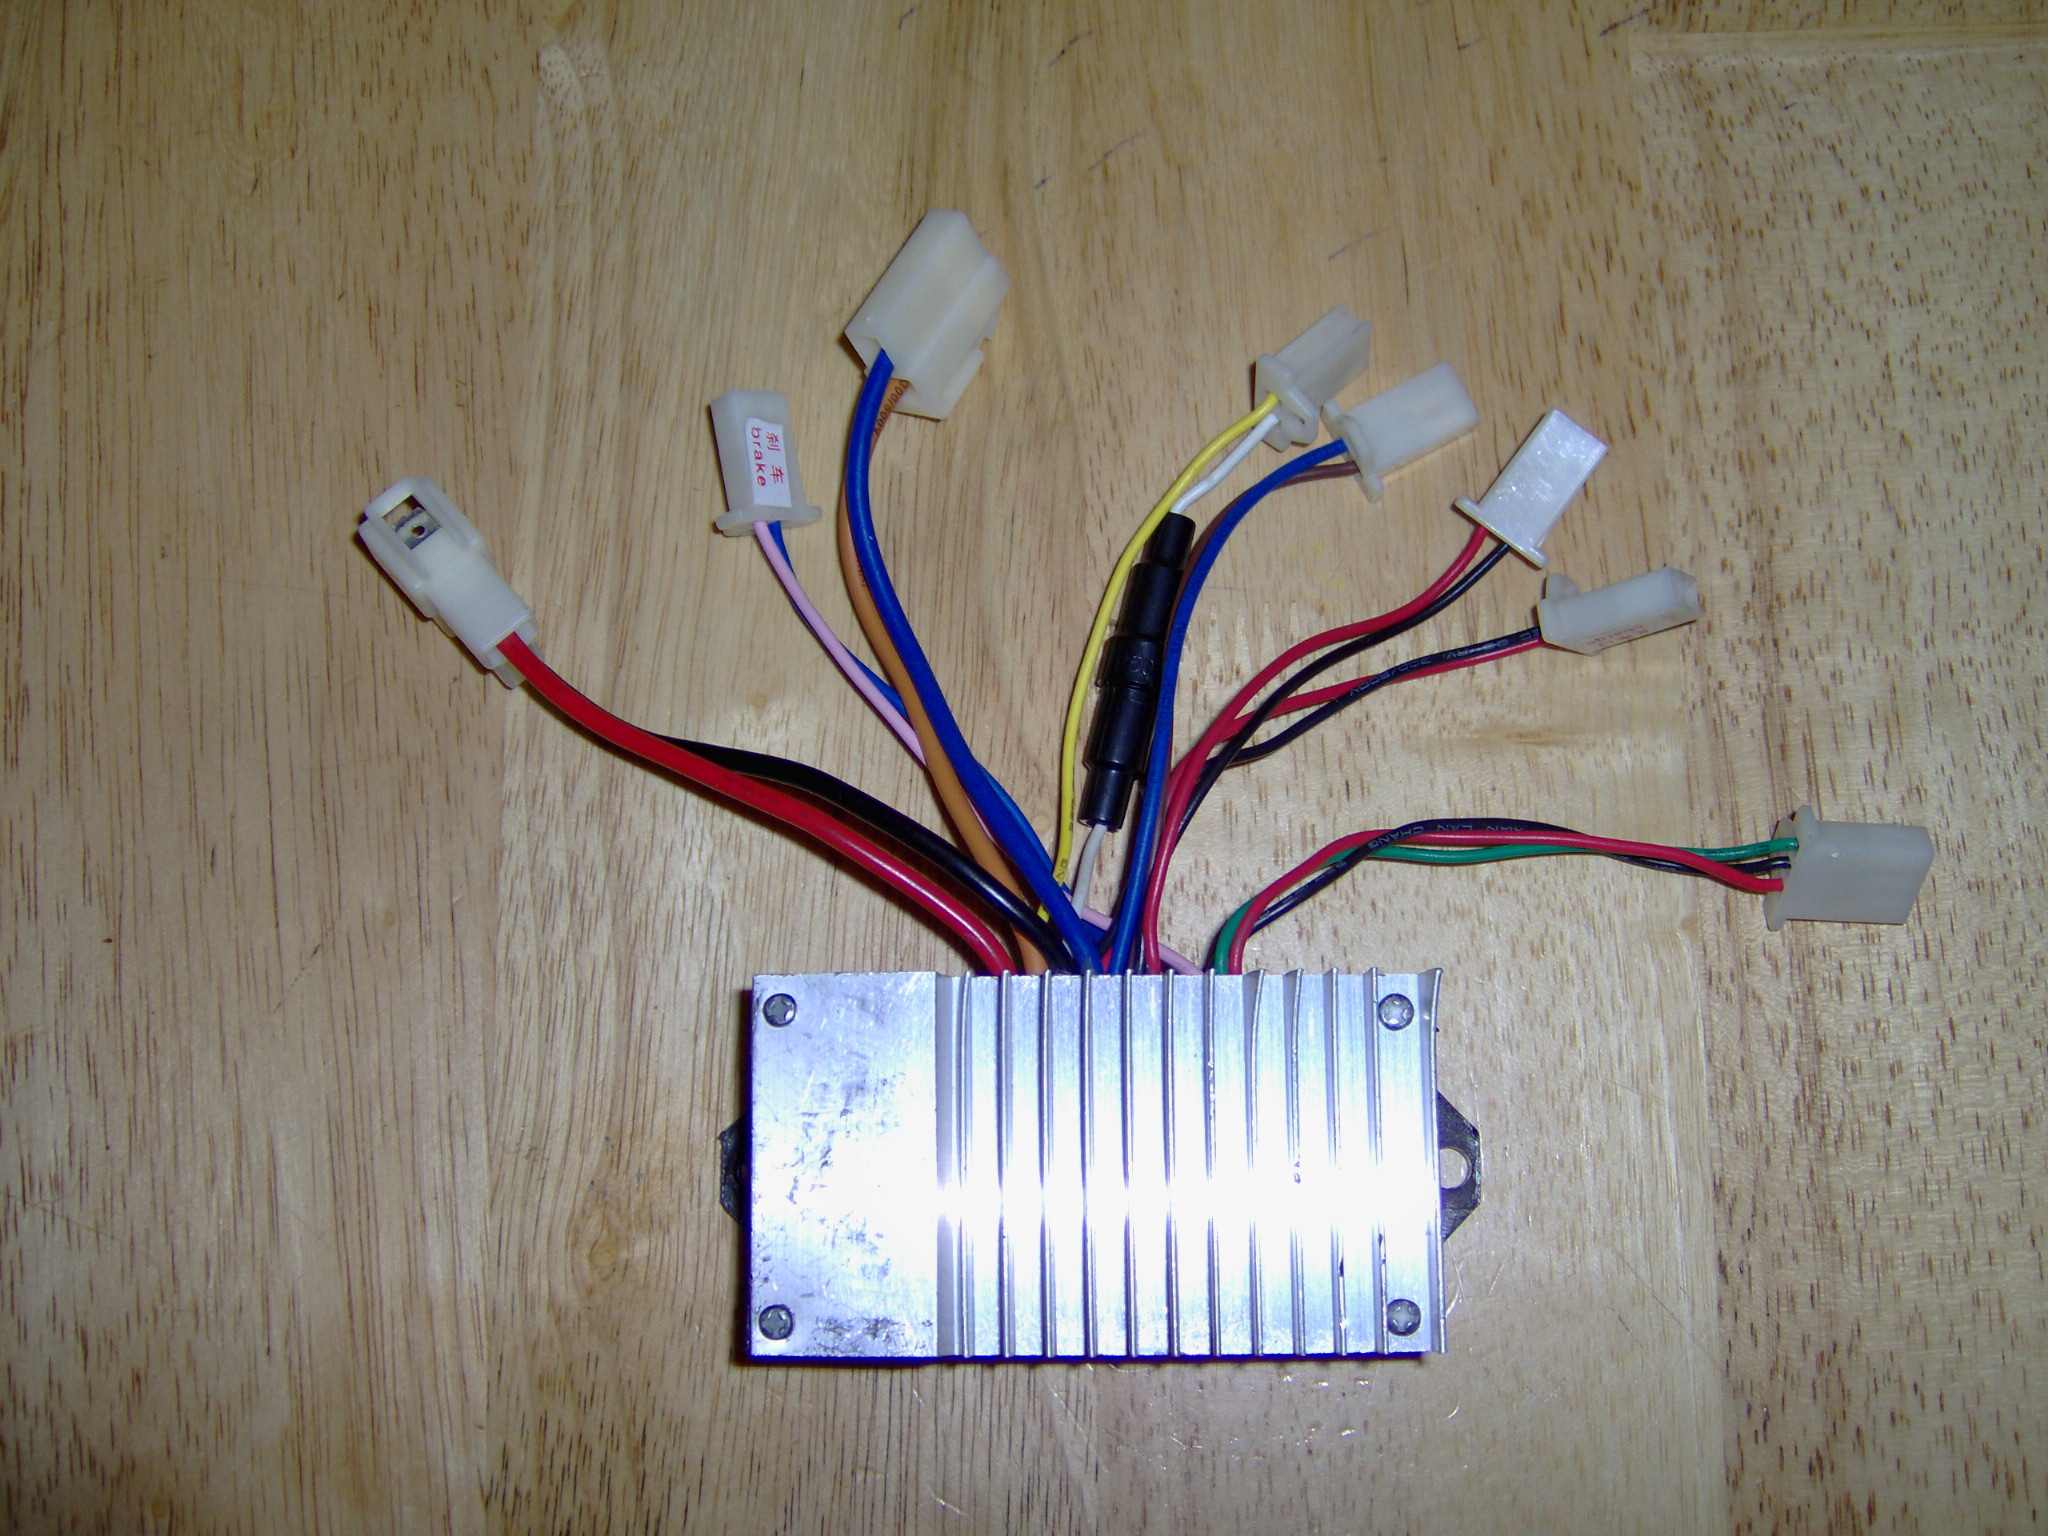 Ct 302s9 24 volt controller for electra scoot n go ct connections diagram